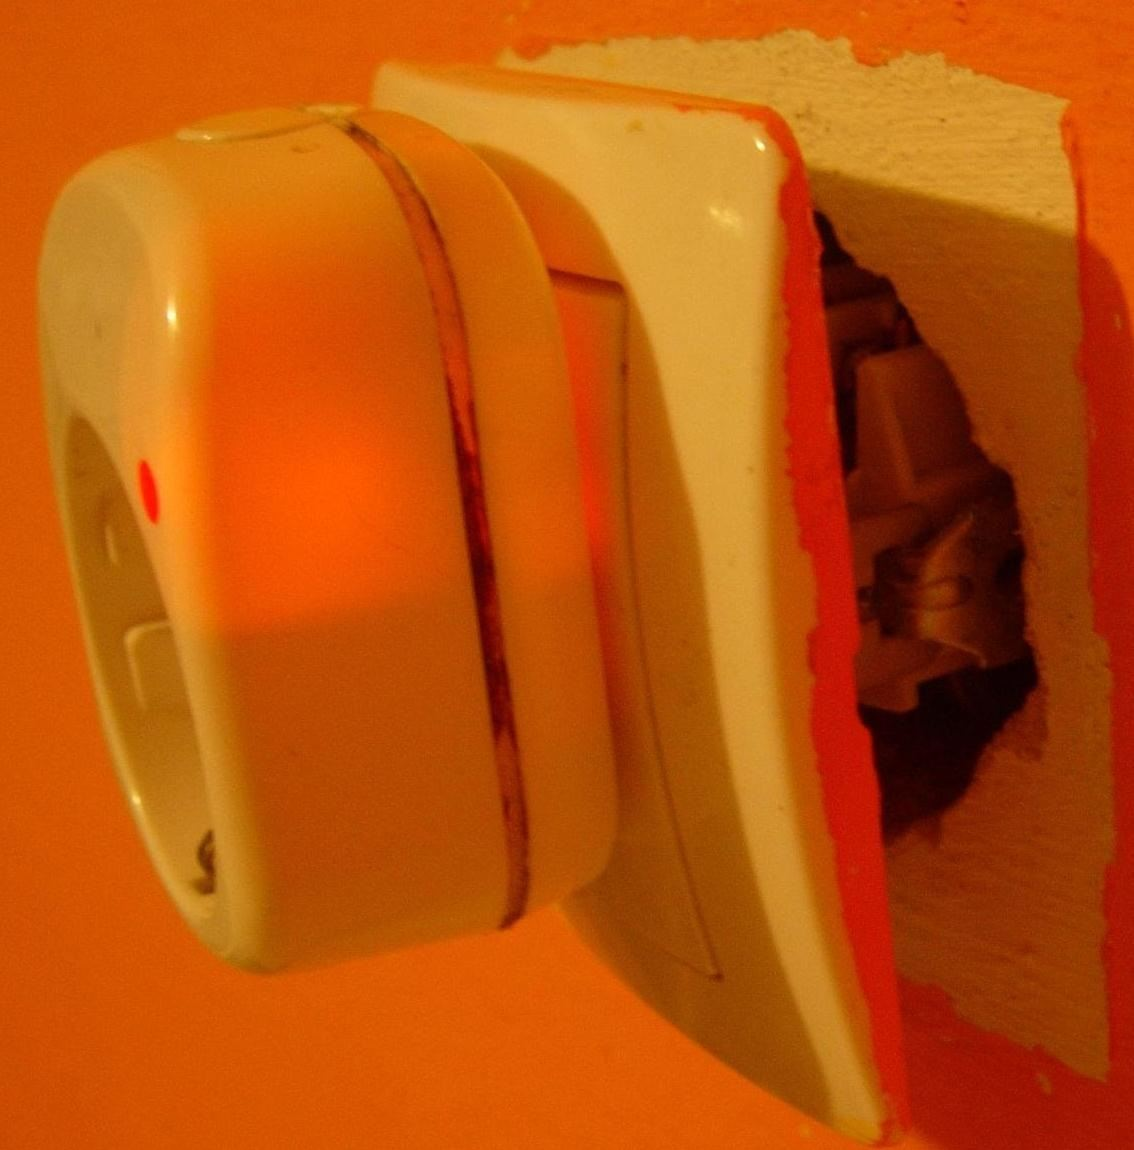 How to Place Your Electrical Socket Safely in the Wall If It Was Pulled Out